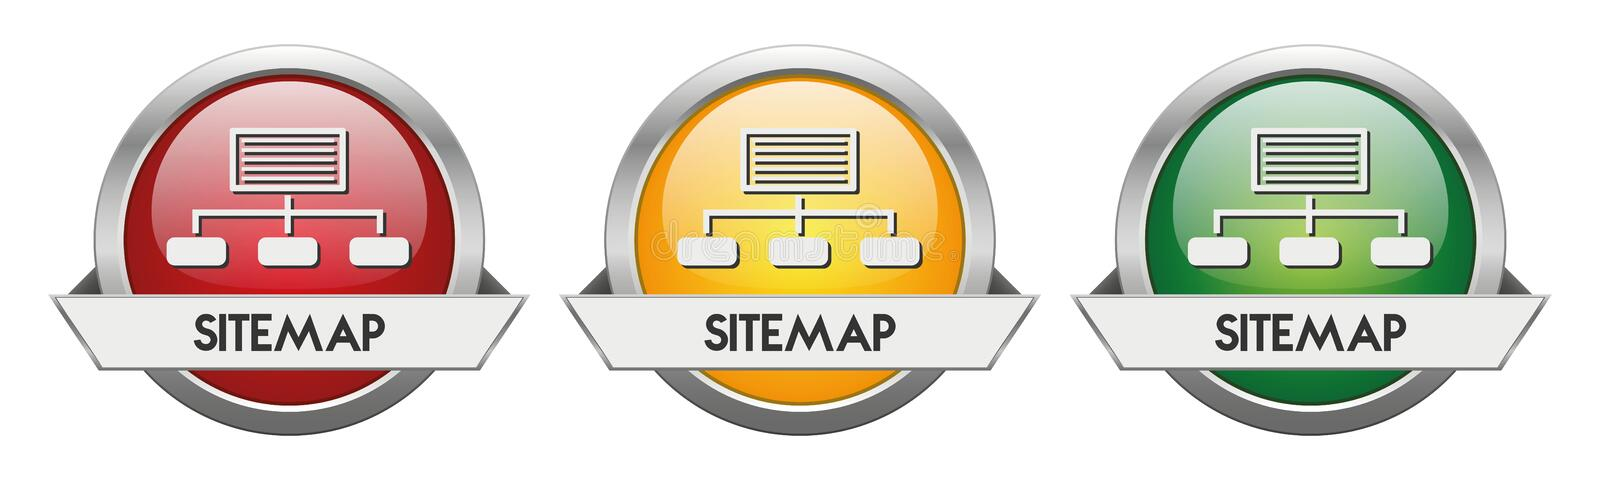 Modern Button Vector Sitemap. For the creative use in graphic design royalty free illustration